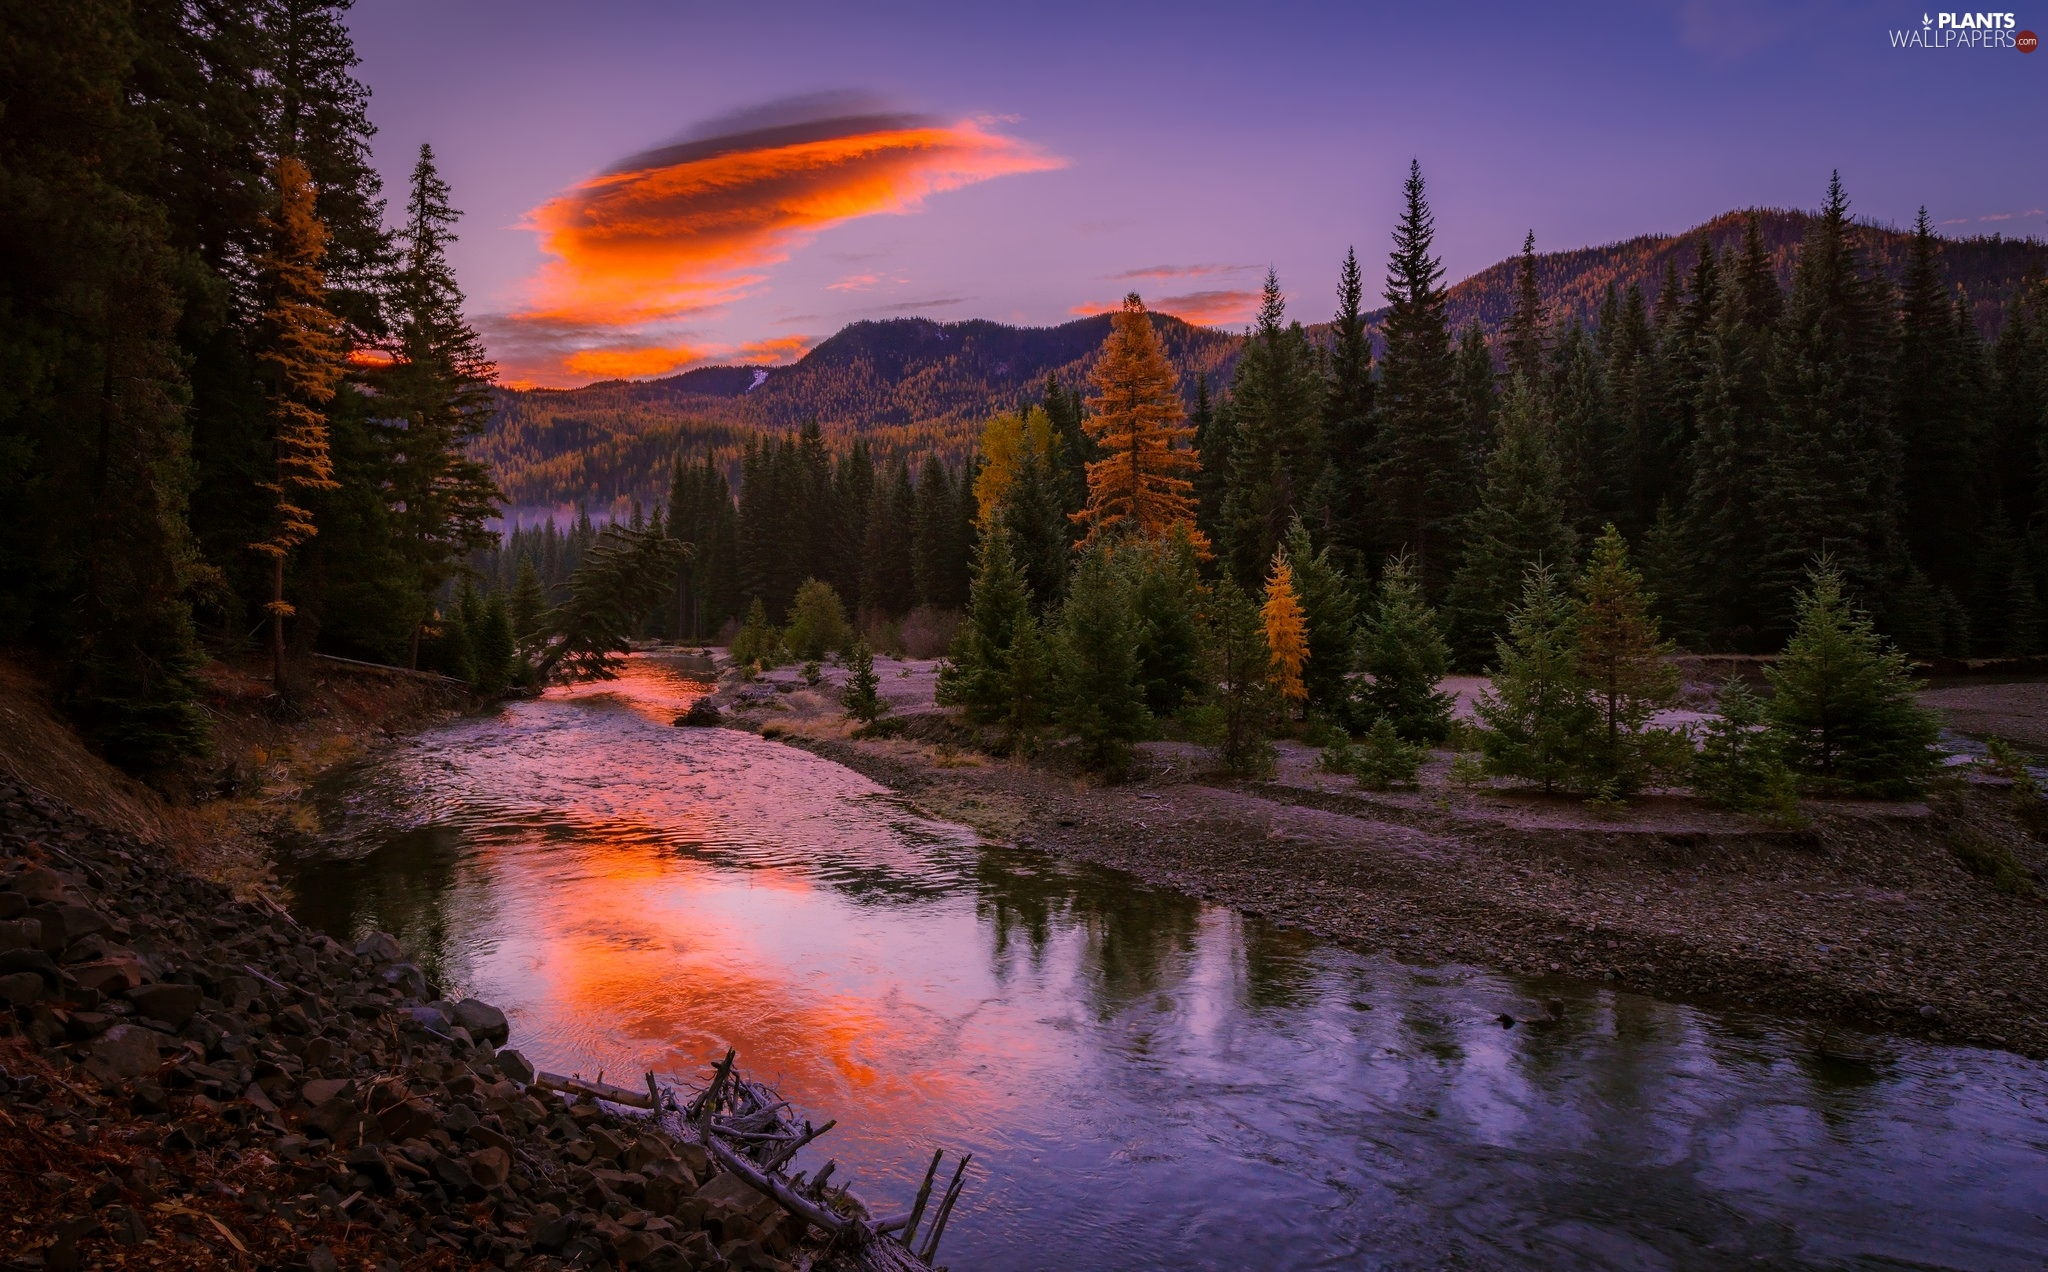 trees, River, forest, autumn, viewes, Mountains